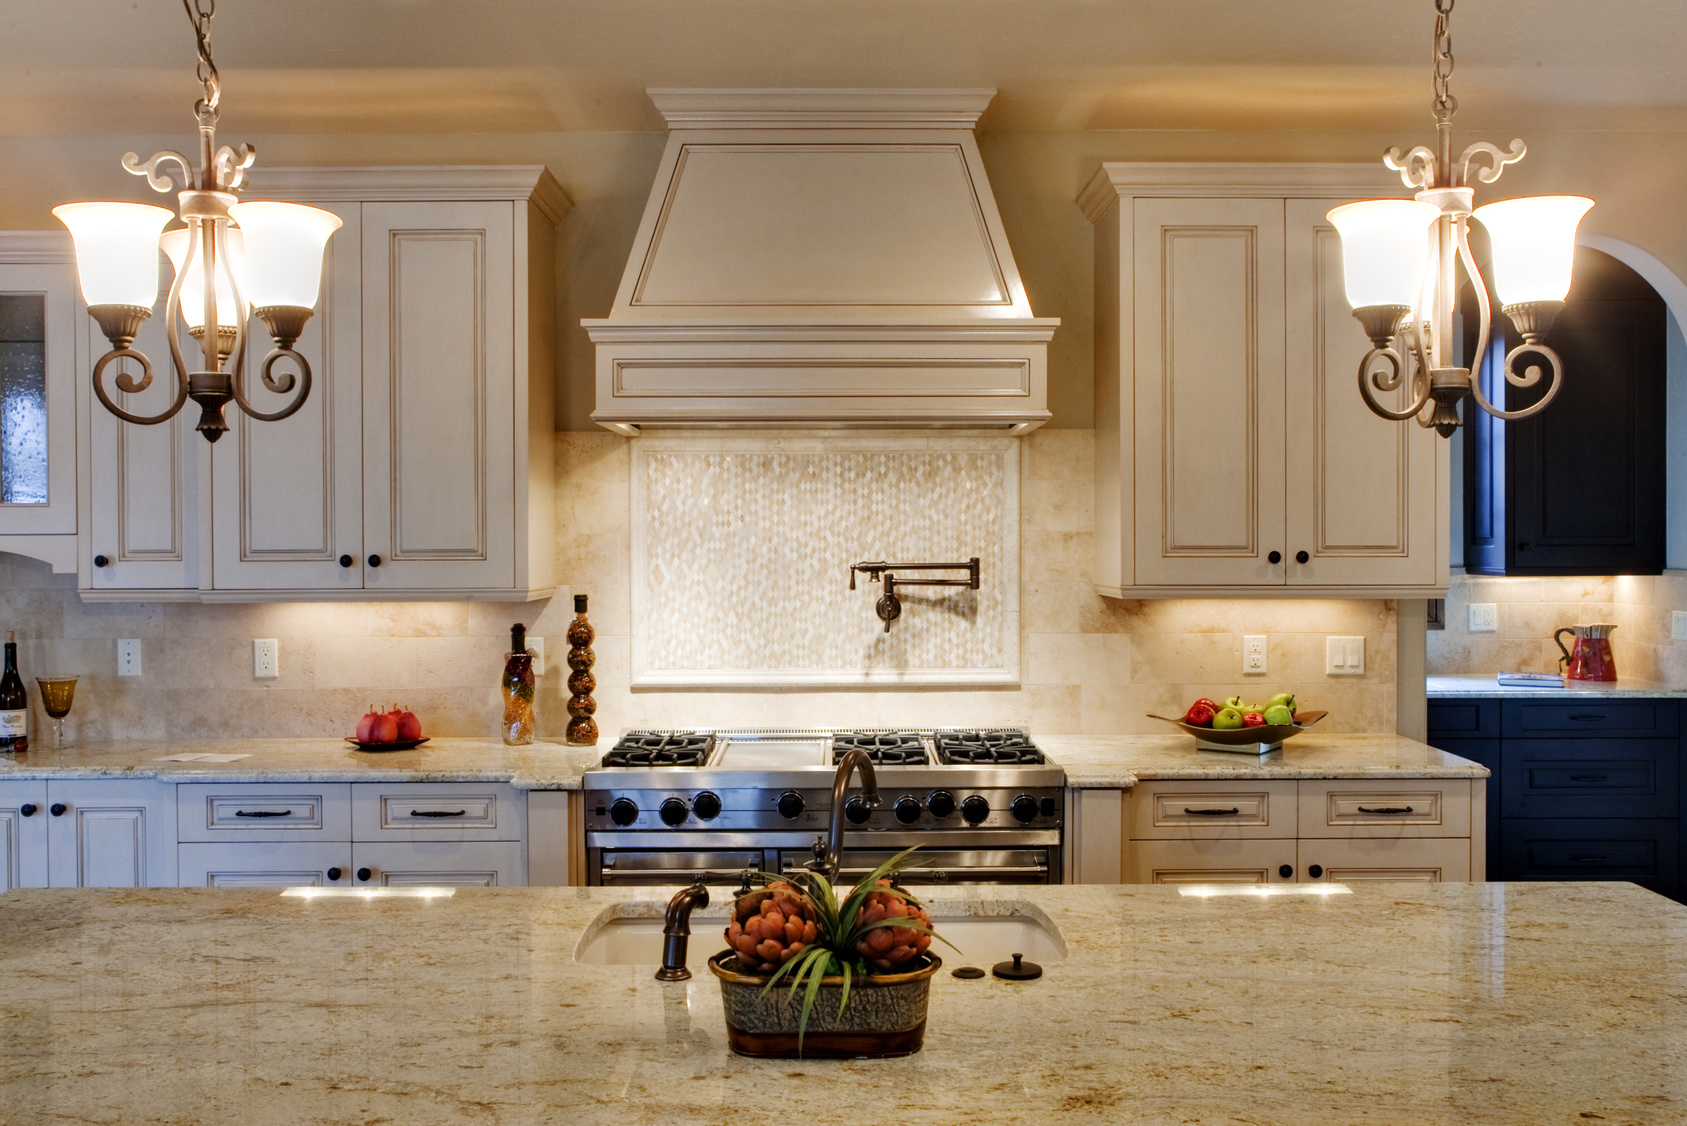 accent lighting ideas from tulsa electrician mister sparky electrician tulsa